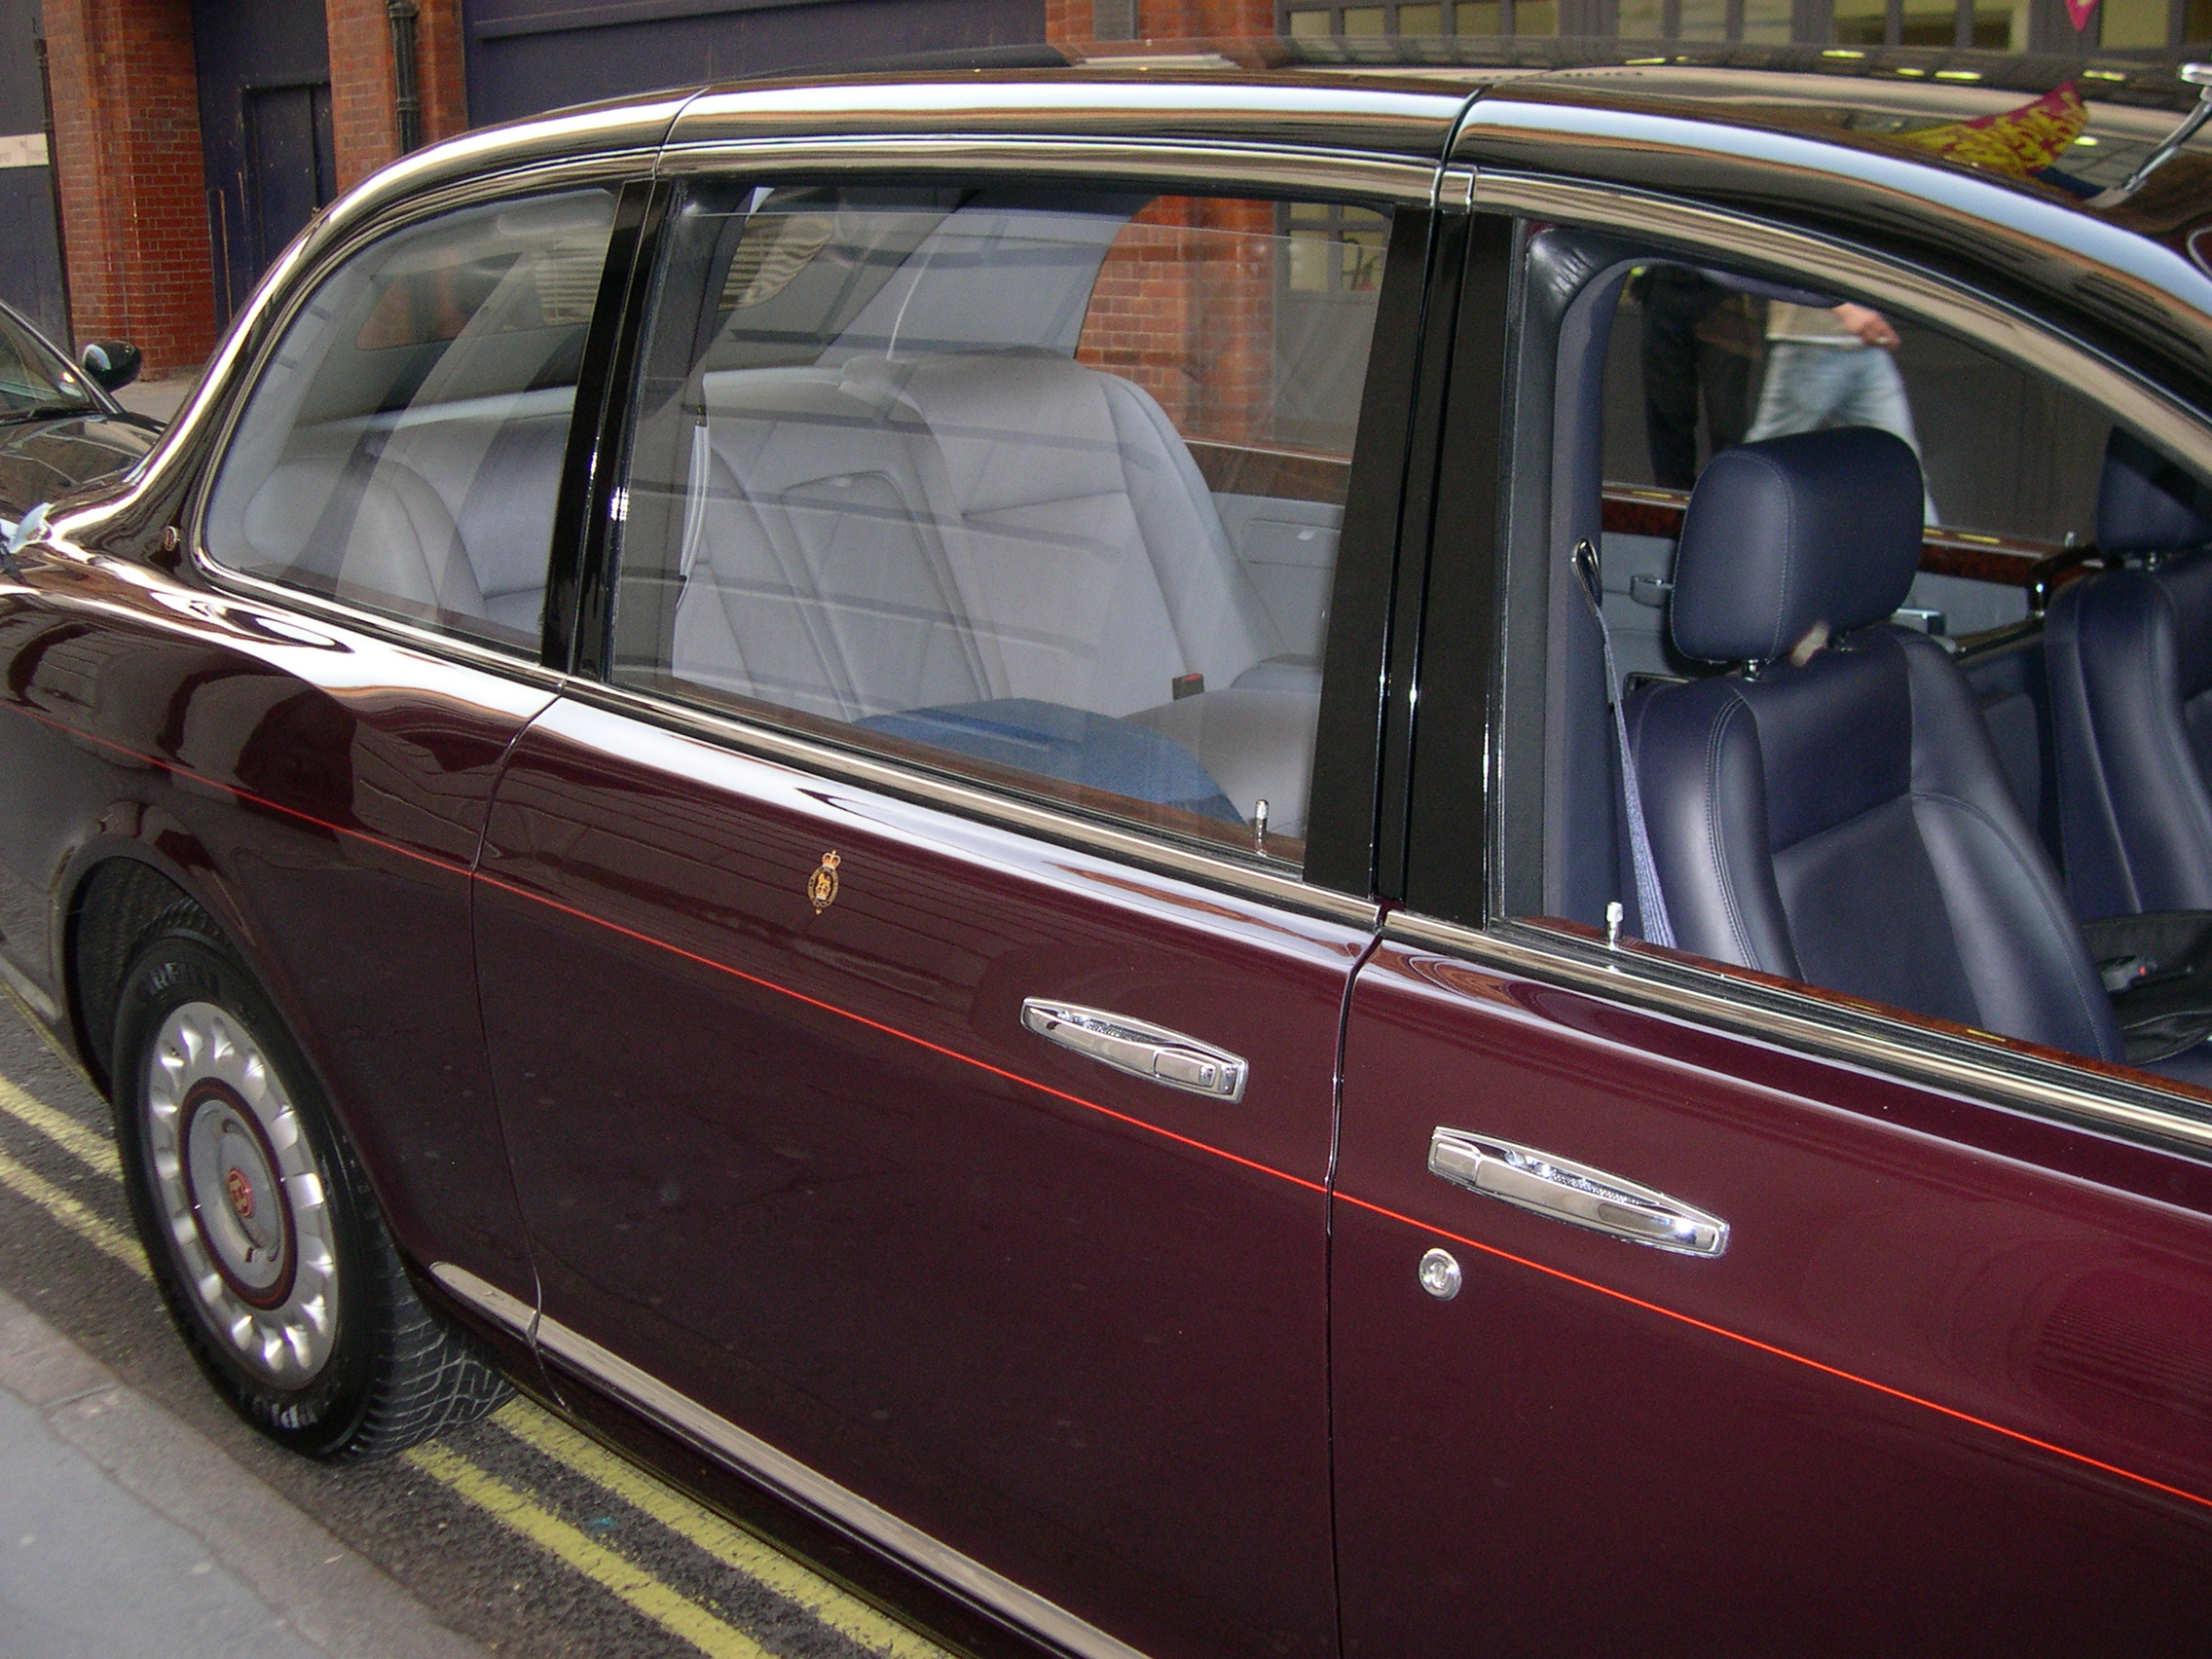 File:2002 Bentley State Limousine compartment.jpg - Wikimedia Commons